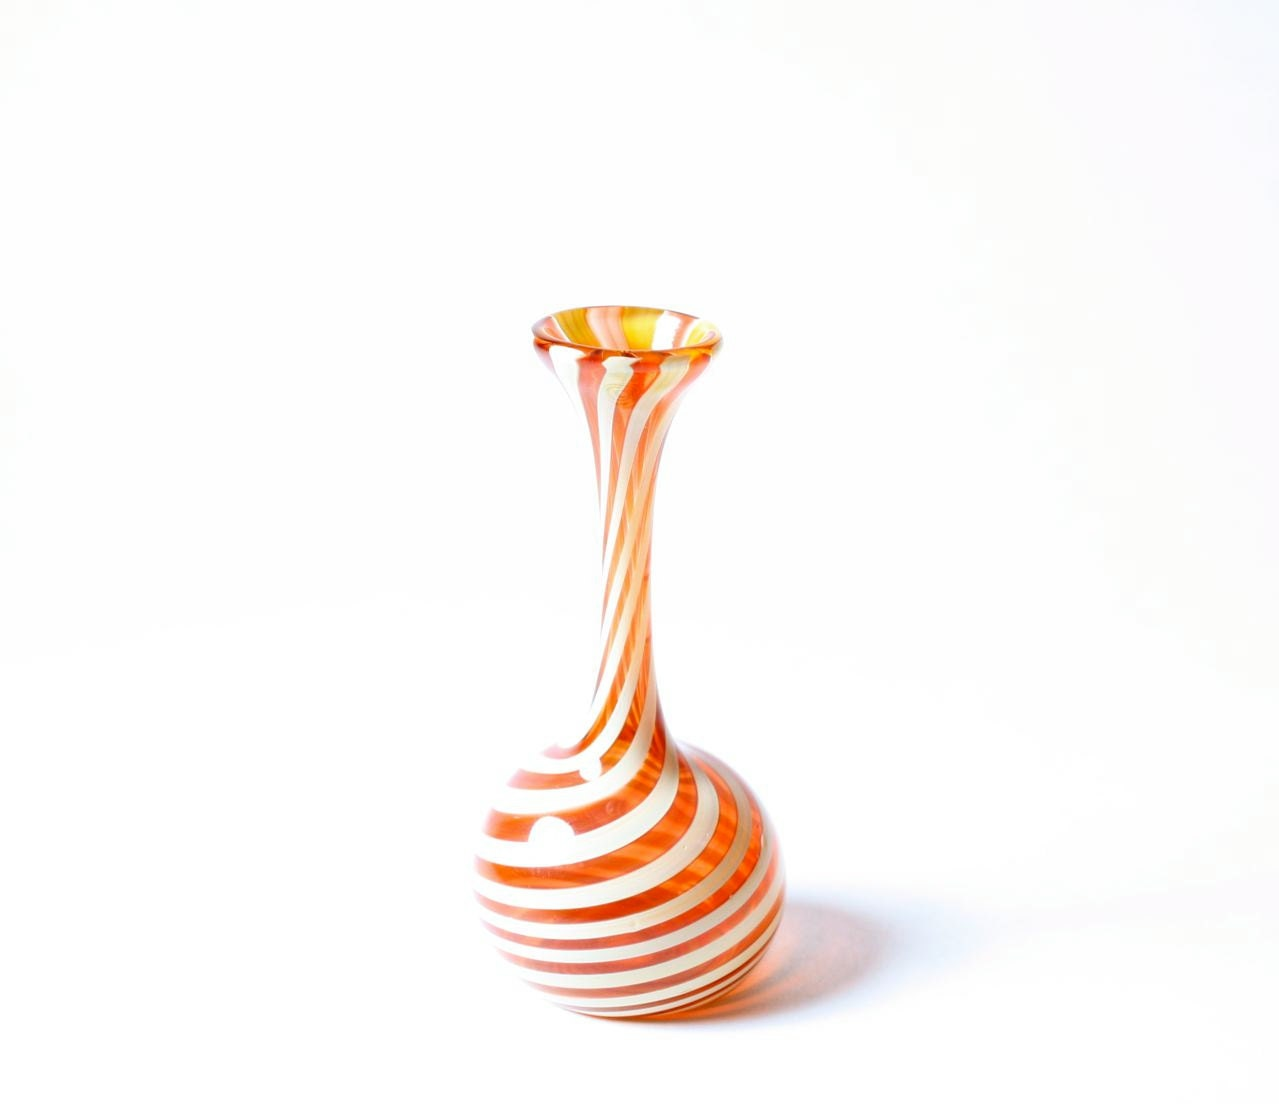 Miniature Amber & White Striped Vase - RocklandGlassworks